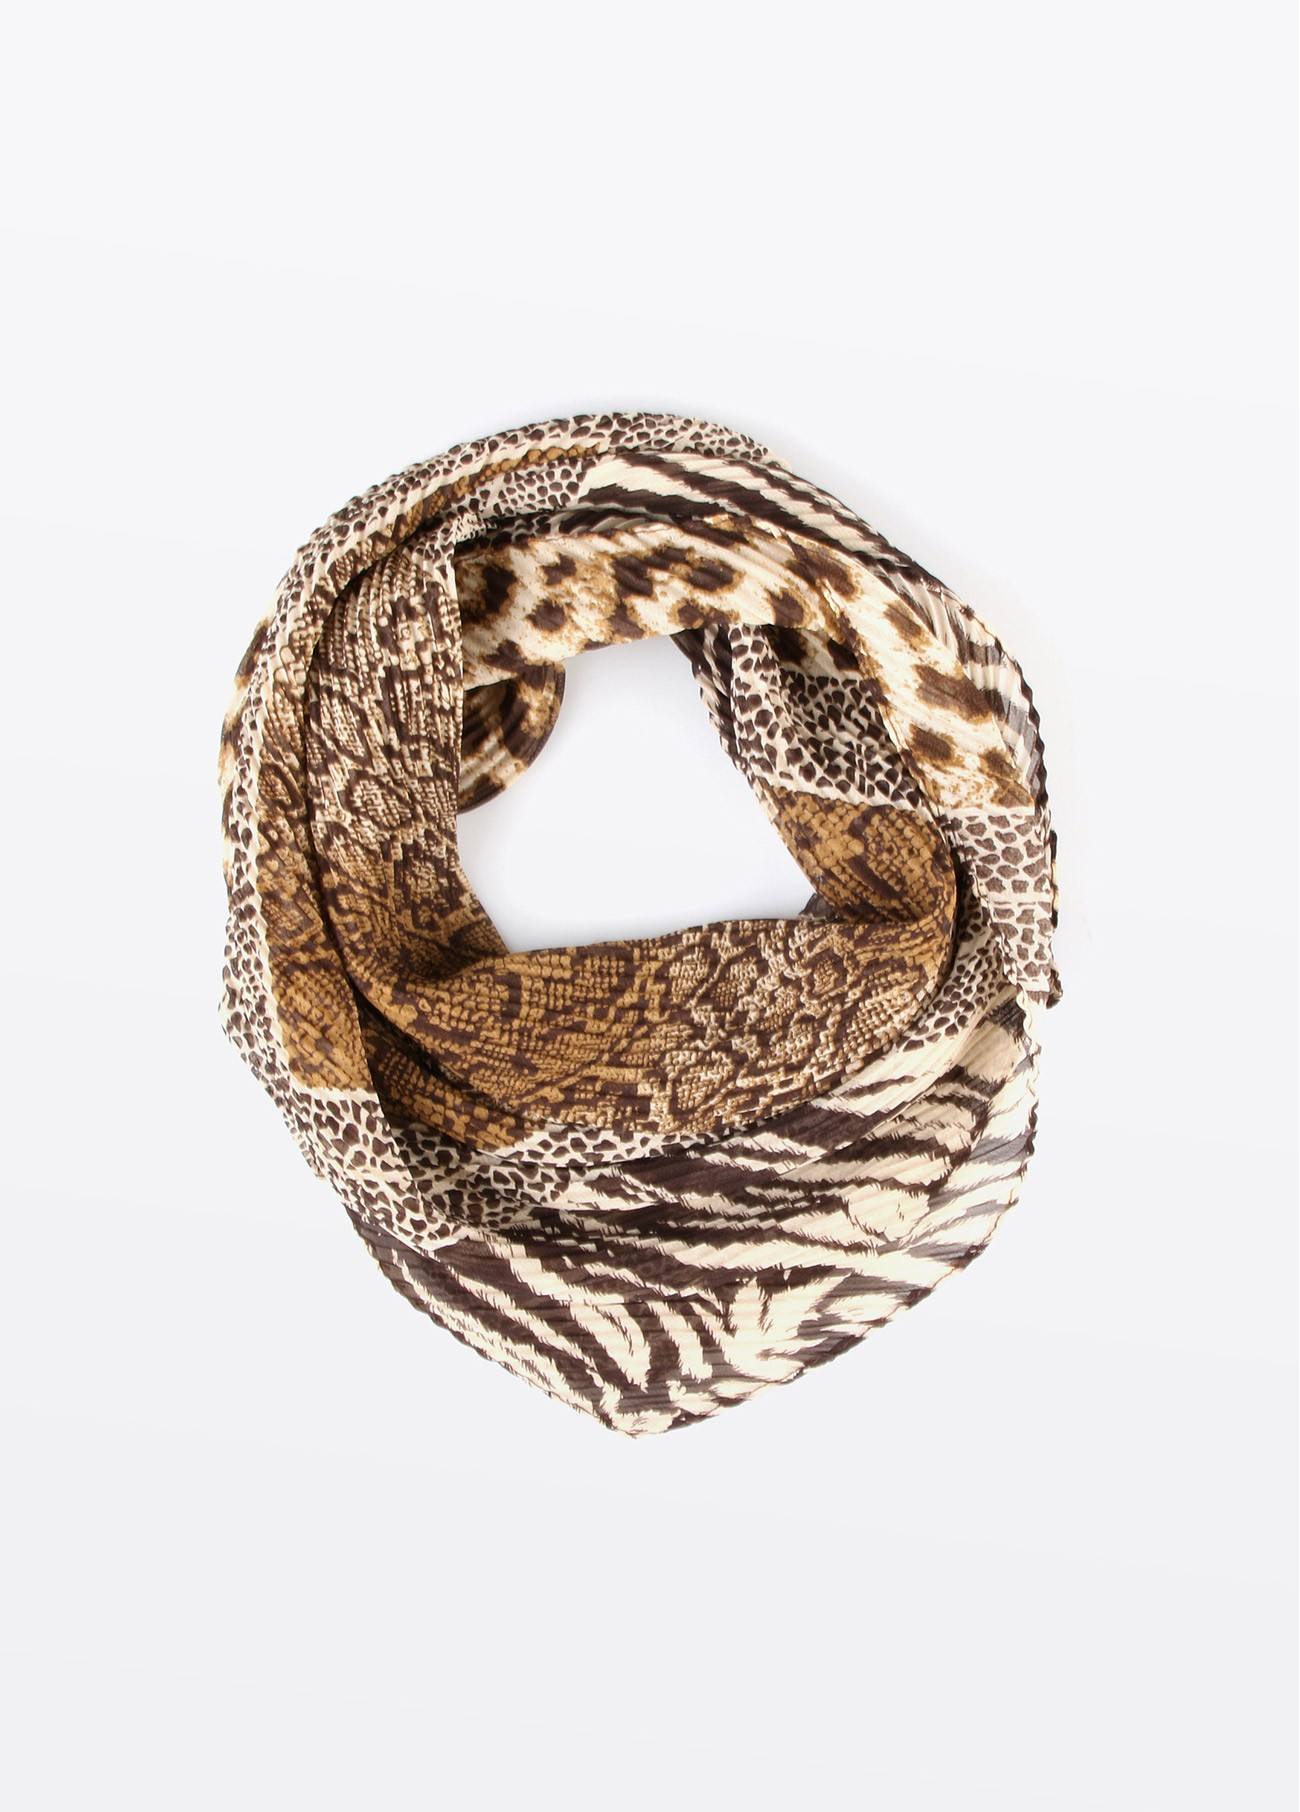 Pañuelo cuello estampado patch serpiente, estampado 2